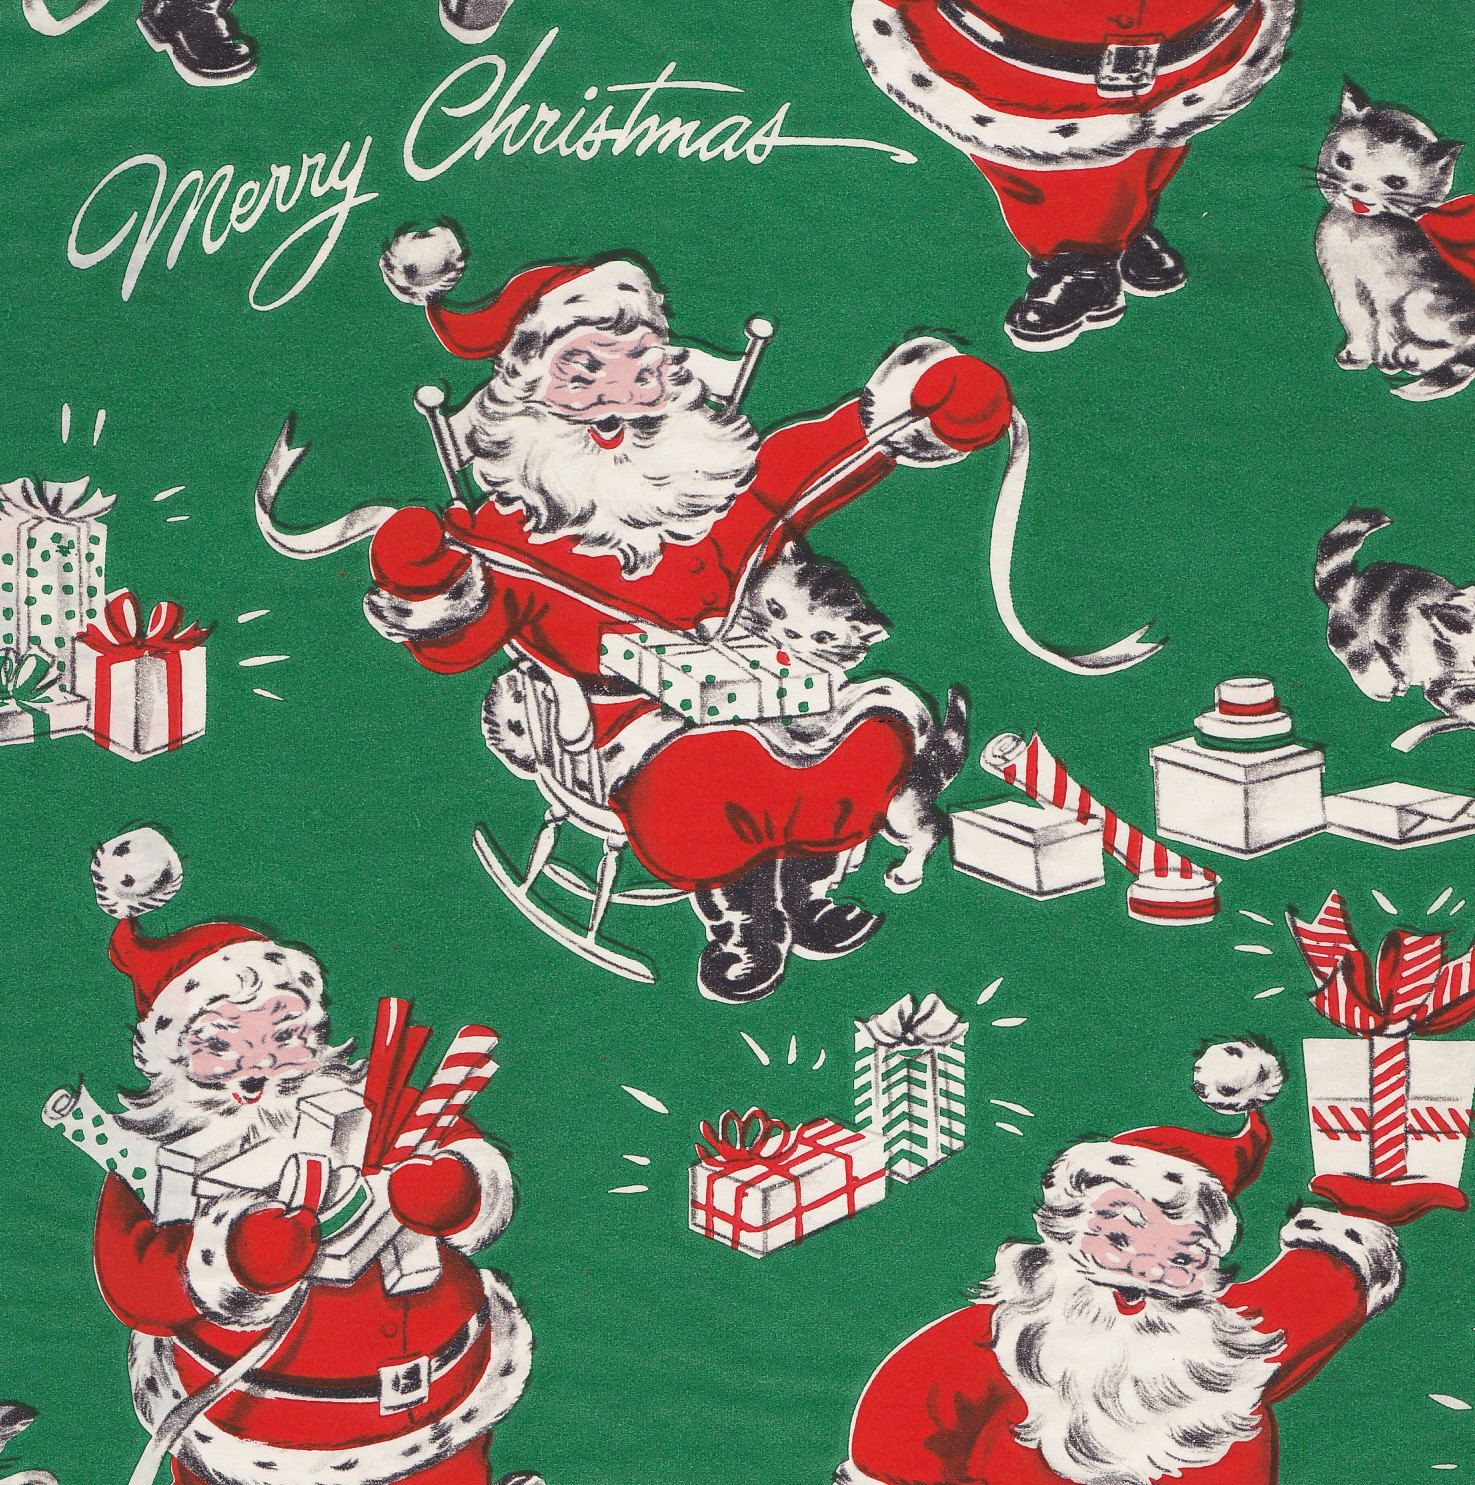 christmas wrapping paper cheap sale Christmas is right around the corner so why not get your wrapping paper and cards now at a ridiculously reduced price xmas cards (there are more than 76 in total) 29 in a box of the xmas stocking 27.